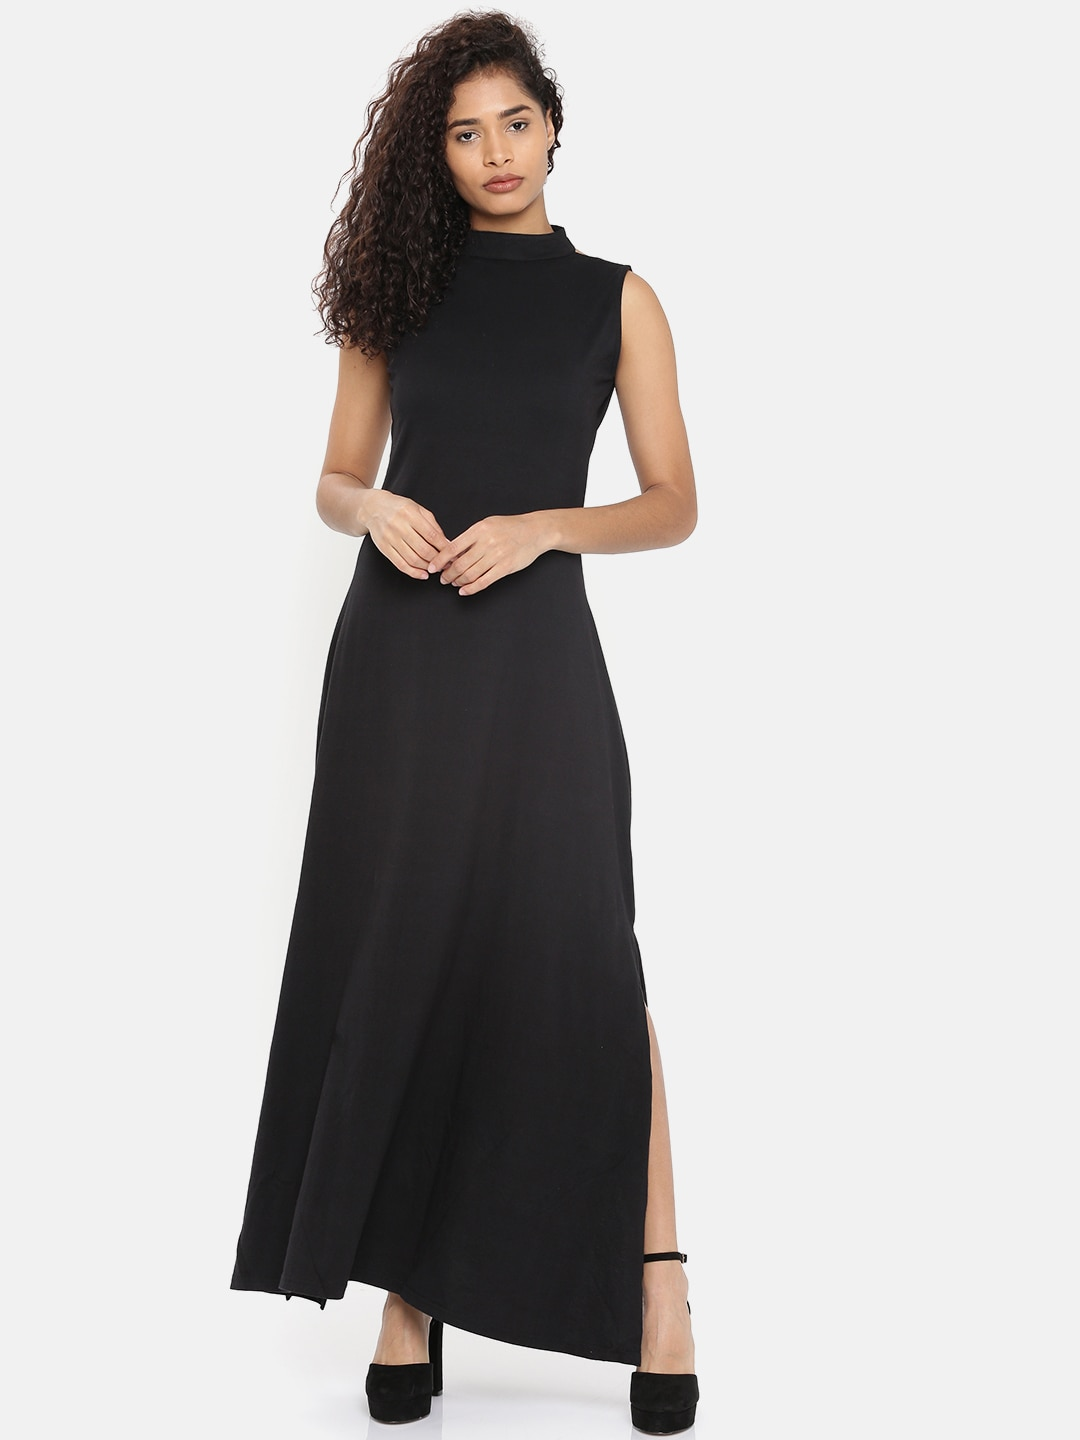 c82ffb0693 Black Miss Chase Dresses - Buy Black Miss Chase Dresses online in India